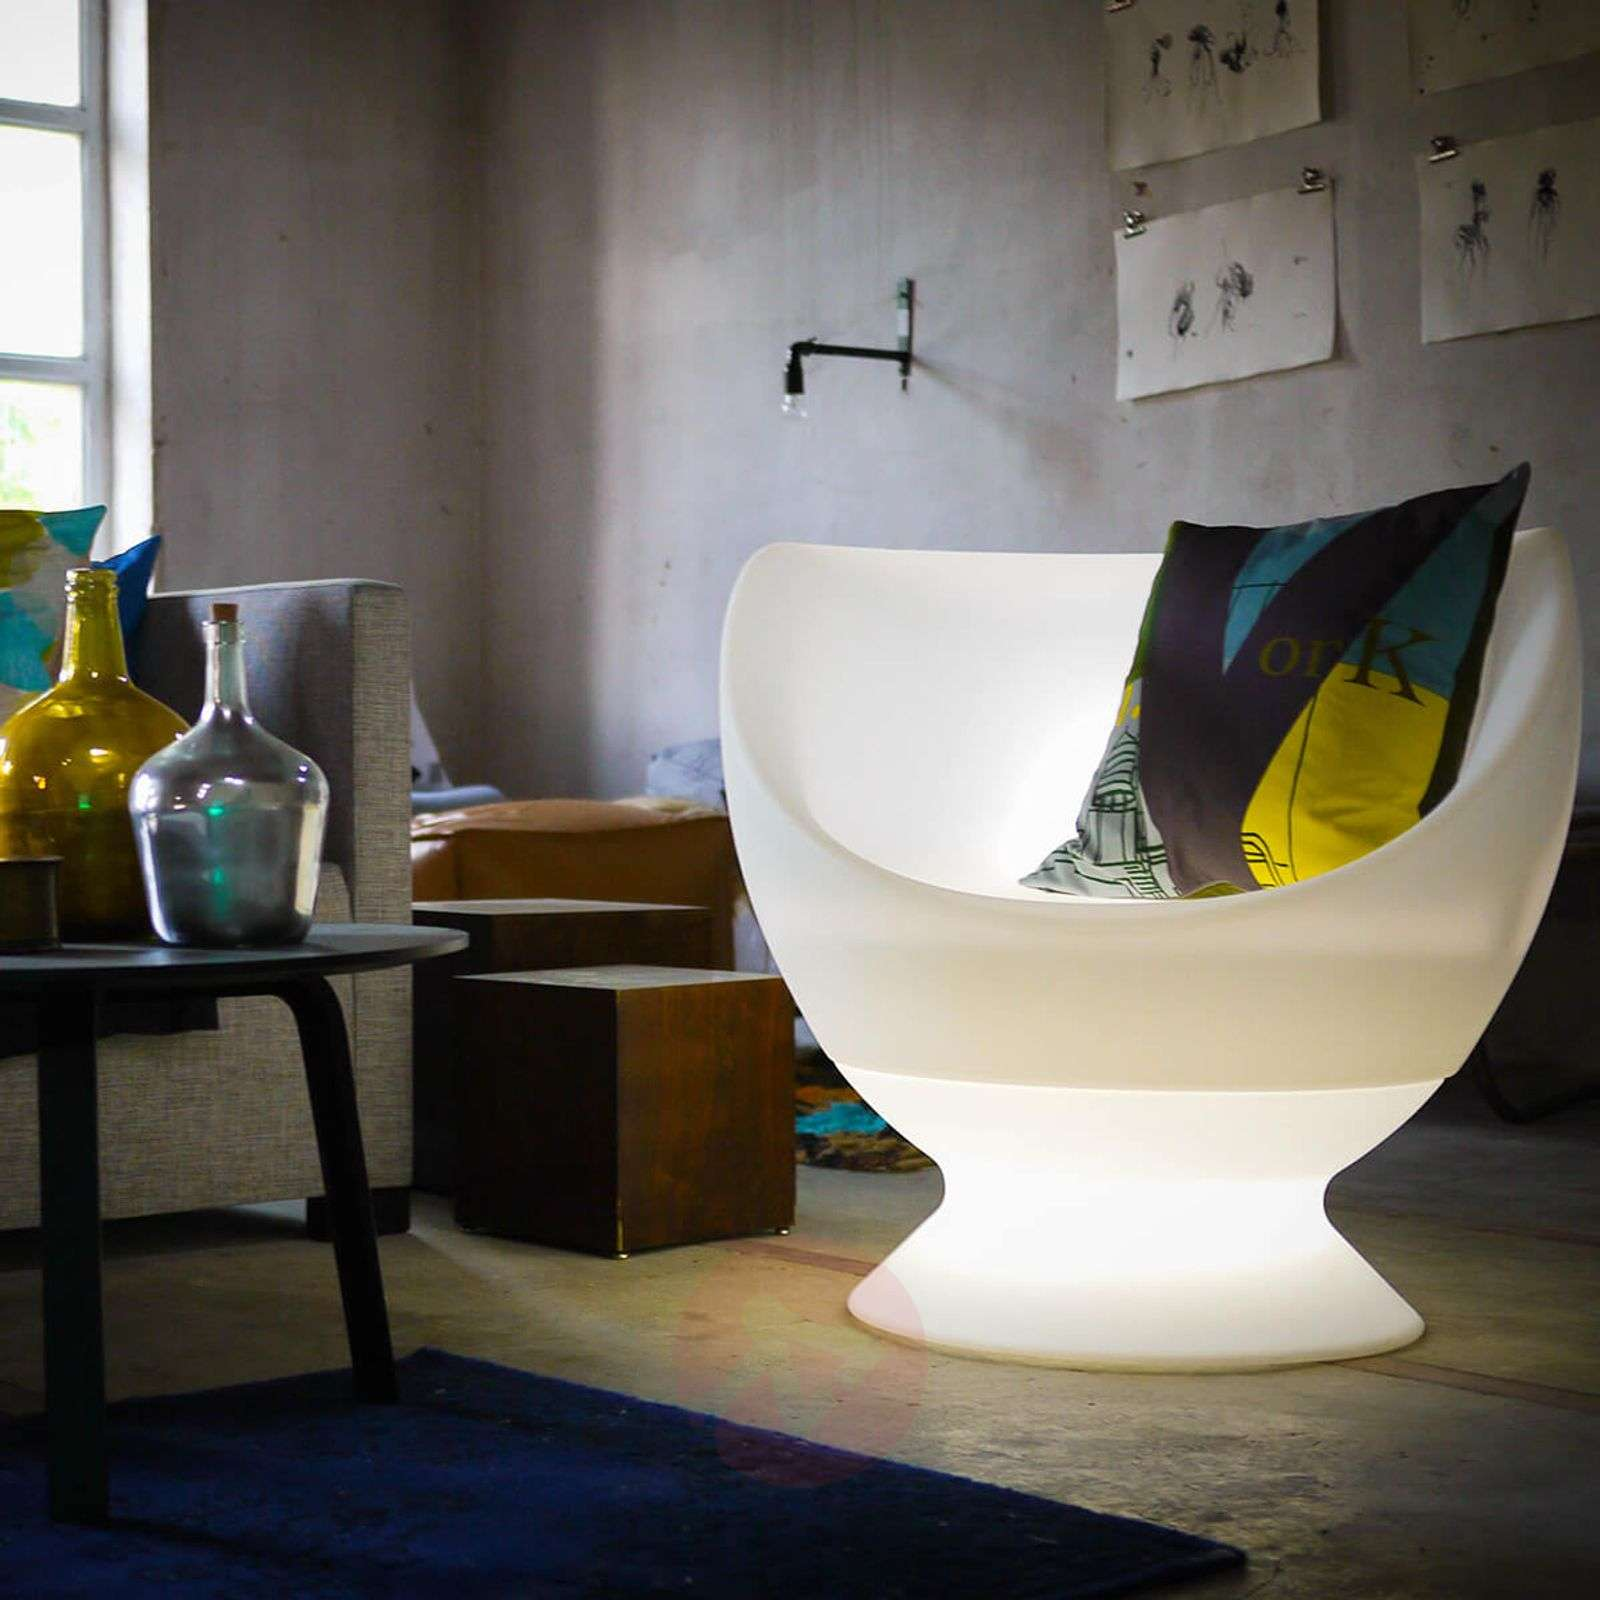 Luminous armchair Boons for outdoors-8590009-01